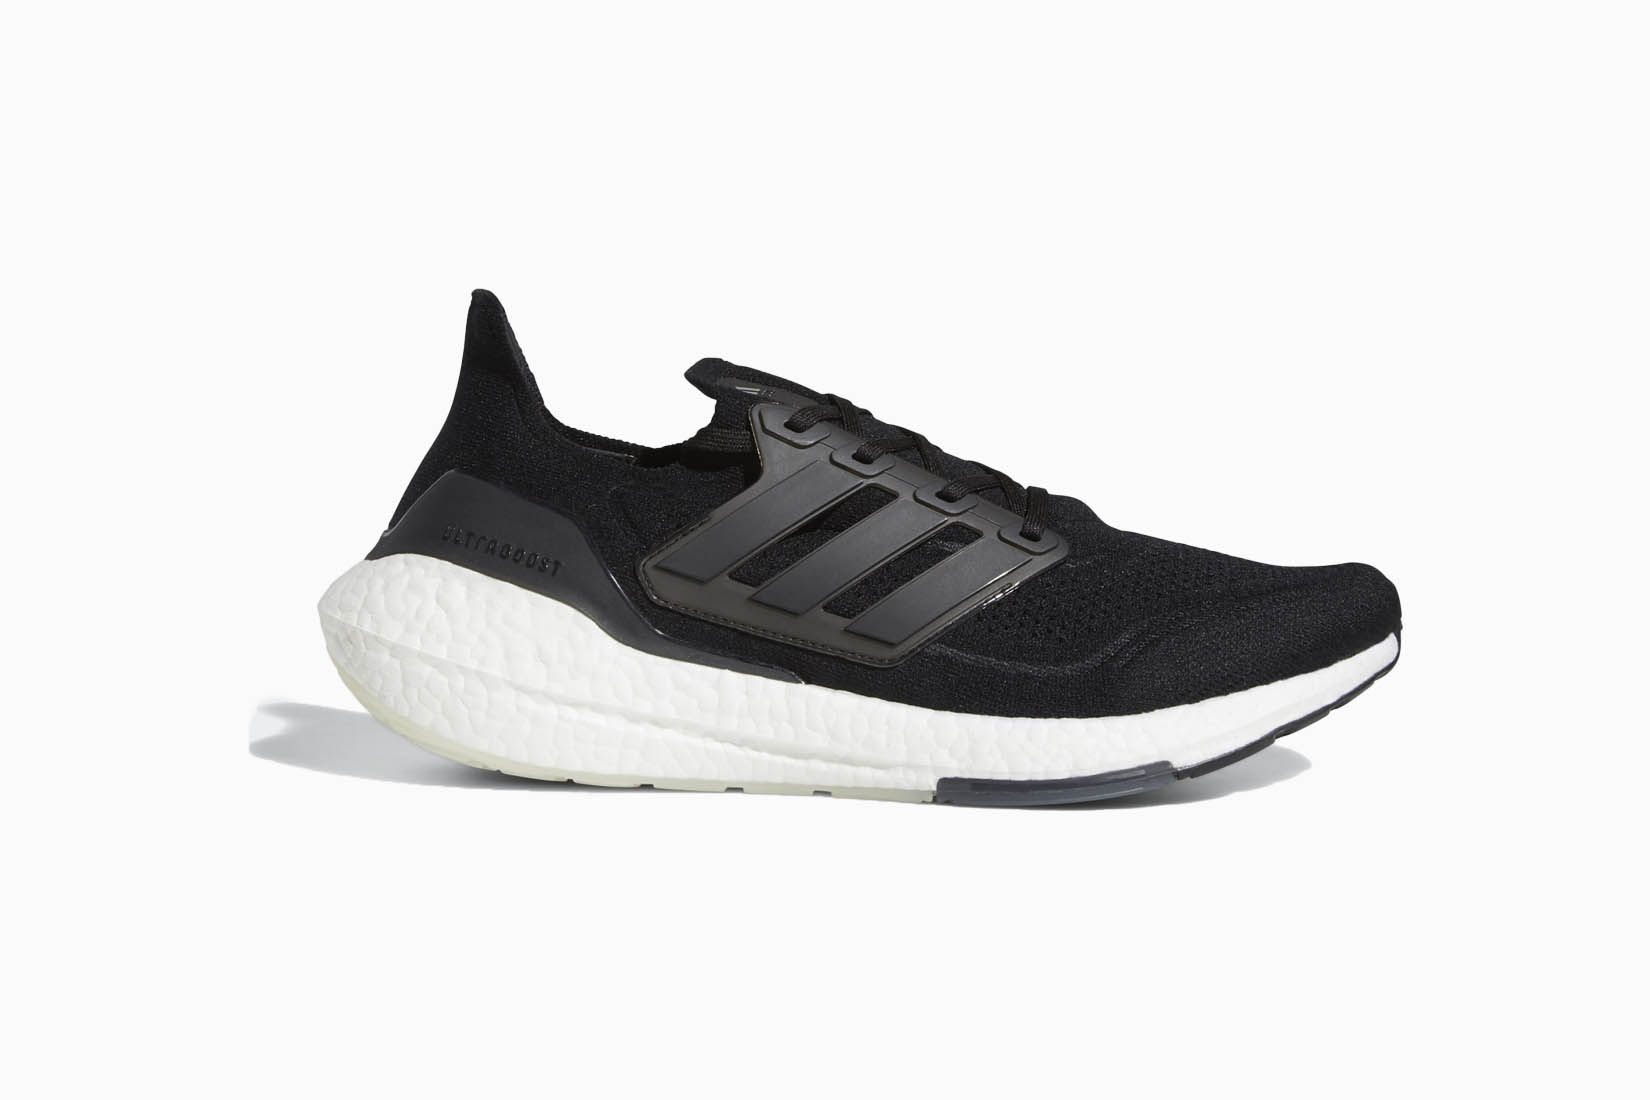 best shoes for standing all day men adidas review Luxe Digital